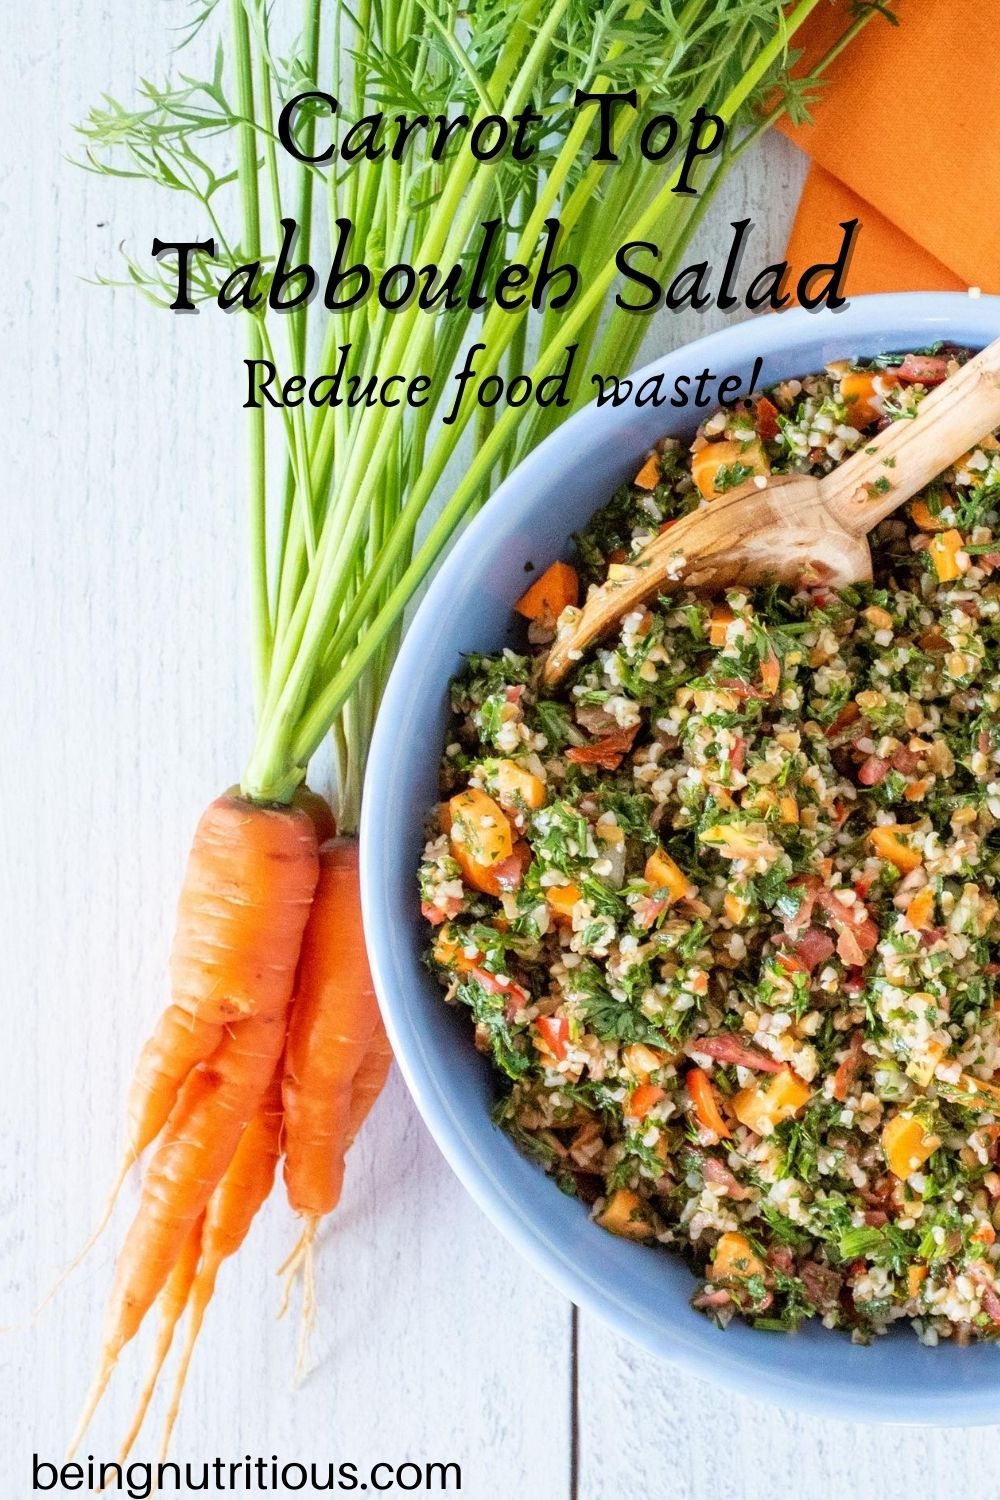 Overhead shot of carrot top tabbouleh in a blue bowl, half of the bowl shown, with a bunch of carrots with the tops still attached lying beside the bowl. Text overlay: Carrot top tabbouleh salad; Reduce food waste!